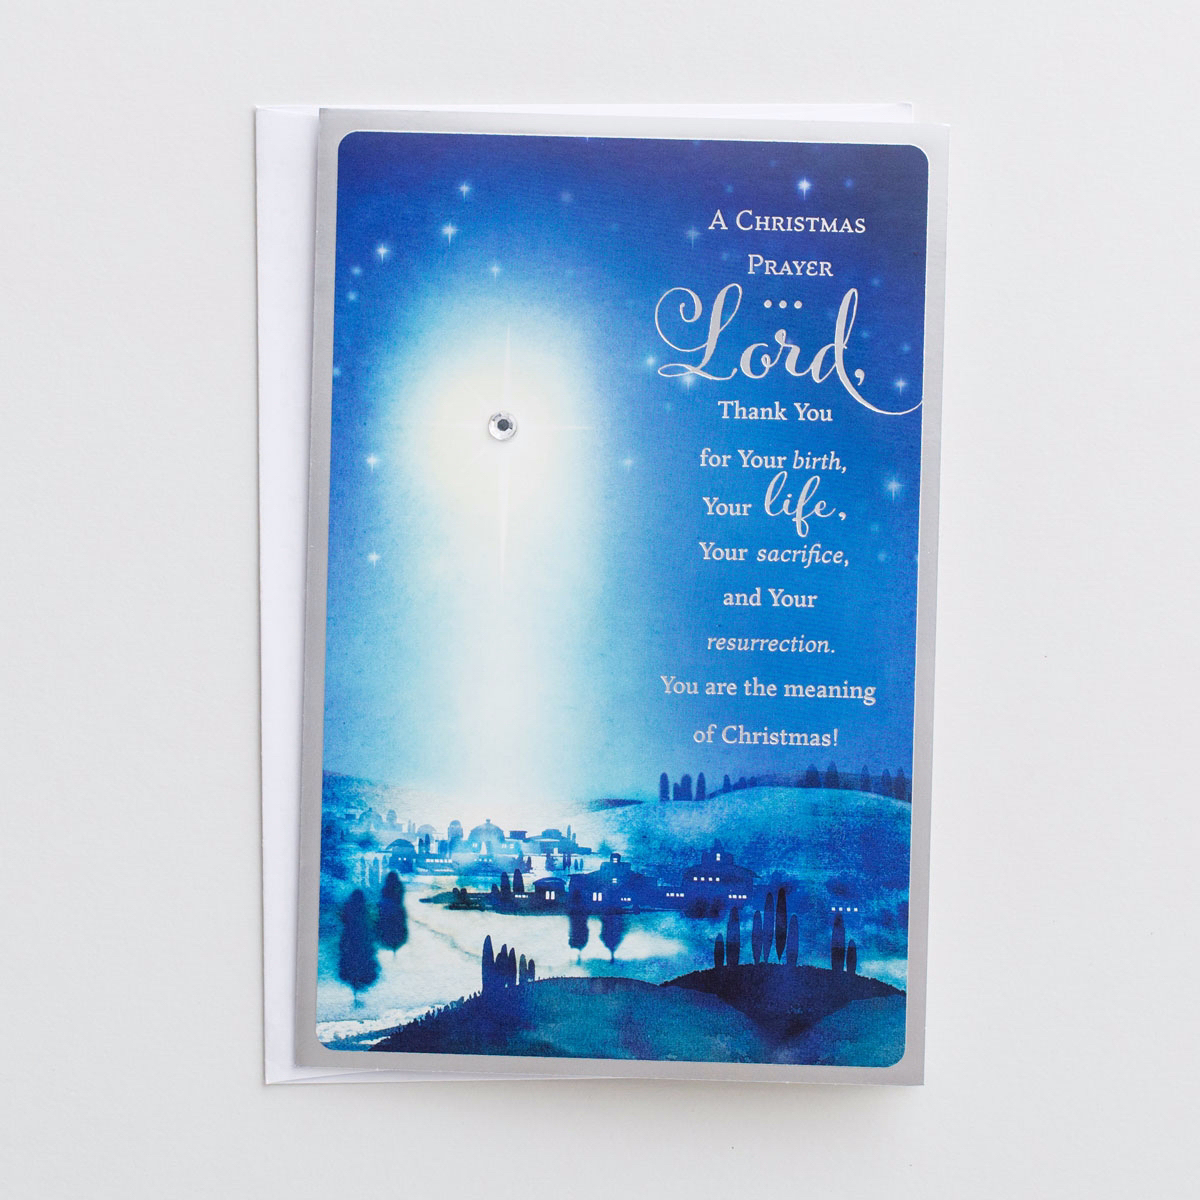 Card-Boxed-A Christmas Prayer-John 1:16 NIV (Box Of 18)